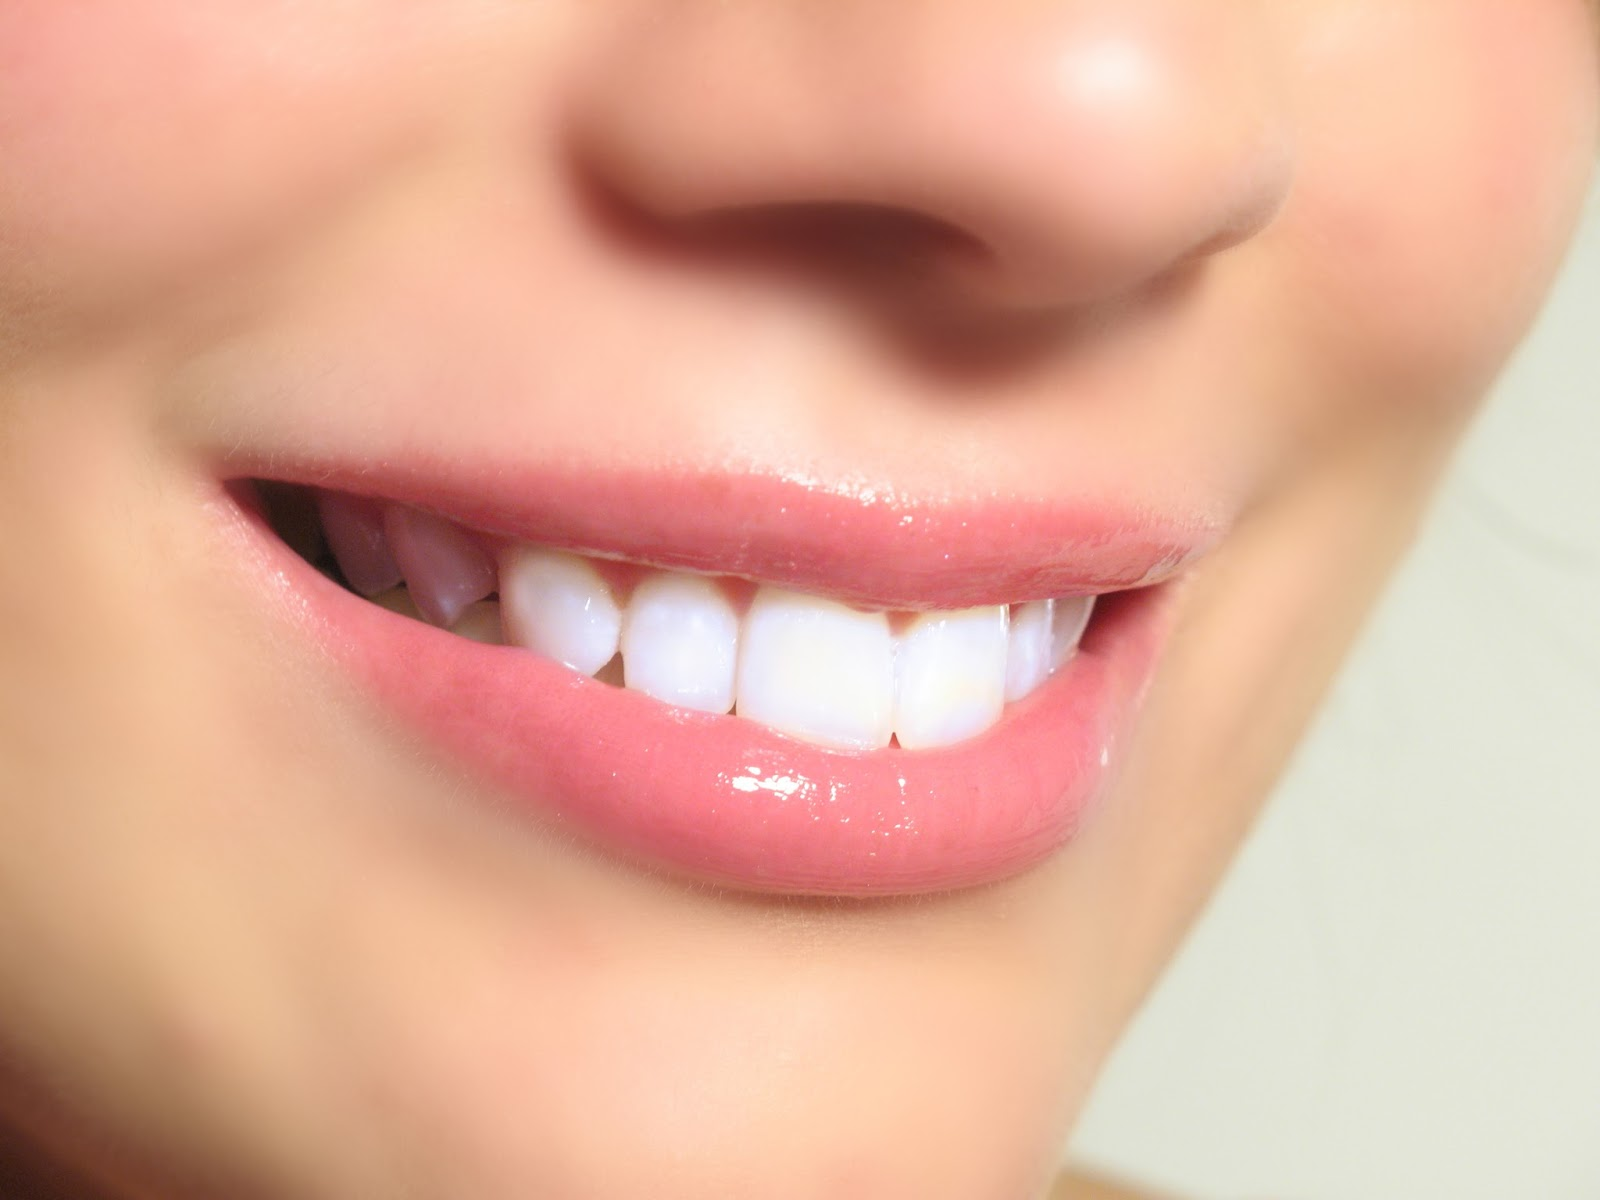 STRESS CAN AFFECT YOUR TEETH